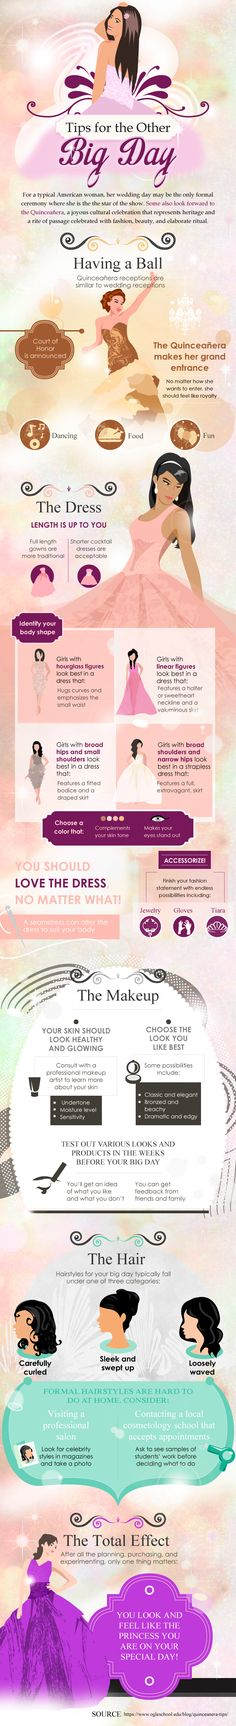 "Quinceanera has traditional been a cultural celebration similar to that of a ""Sweet 16″ party. Considered a more formal event, traditional colors have been white and pink with an abundance of pastels integrated. Modern celebrations have now incorporated blue, turquoise, and even lime greens. A Quinceanera celebration can now extend further out than just an"